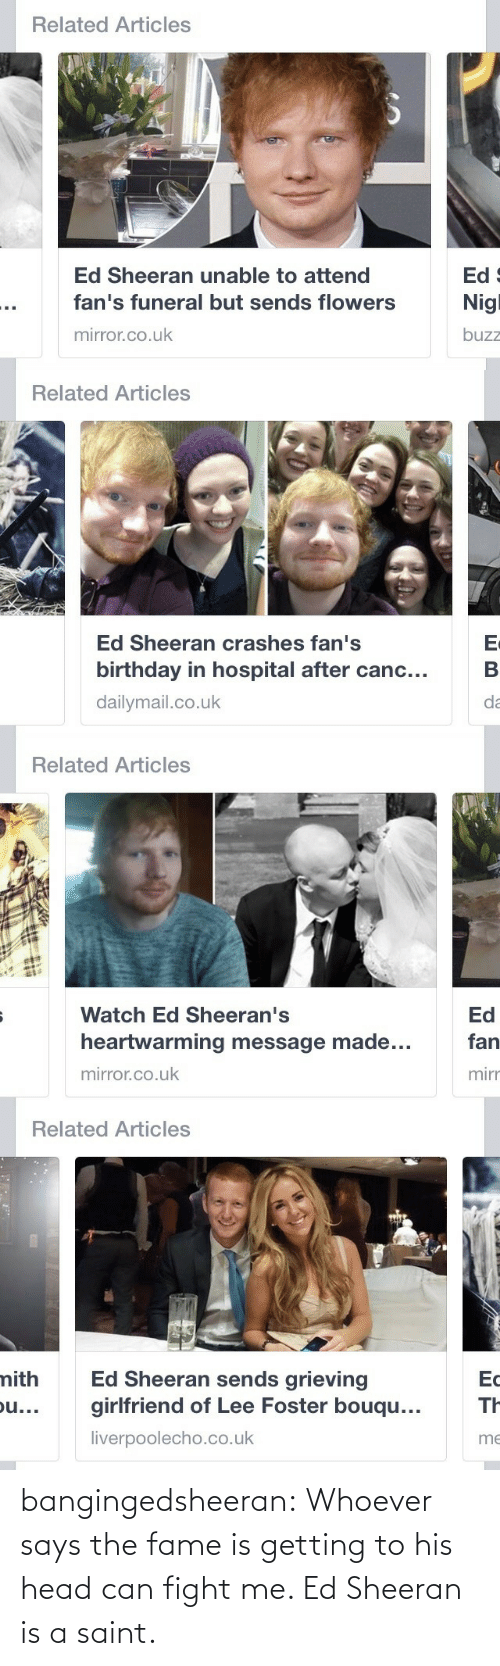 Canc: Related Articles  Ed 9  Nigl  Ed Sheeran unable to attend  fan's funeral but sends flowers  mirror.co.uk  buzz   Related Articles  Ed Sheeran crashes fan's  birthday in hospital after canc...  dailymail.co.uk  da   Related Articles  Ed  Watch Ed Sheeran's  heartwarming message made...  fan  mirror.co.uk  mirr   Related Articles  mith  Ed Sheeran sends grieving  girlfriend of Lee Foster bouqu...  Ec  TH  ou...  liverpoolecho.co.uk  me bangingedsheeran:  Whoever says the fame is getting to his head can fight me. Ed Sheeran is a saint.